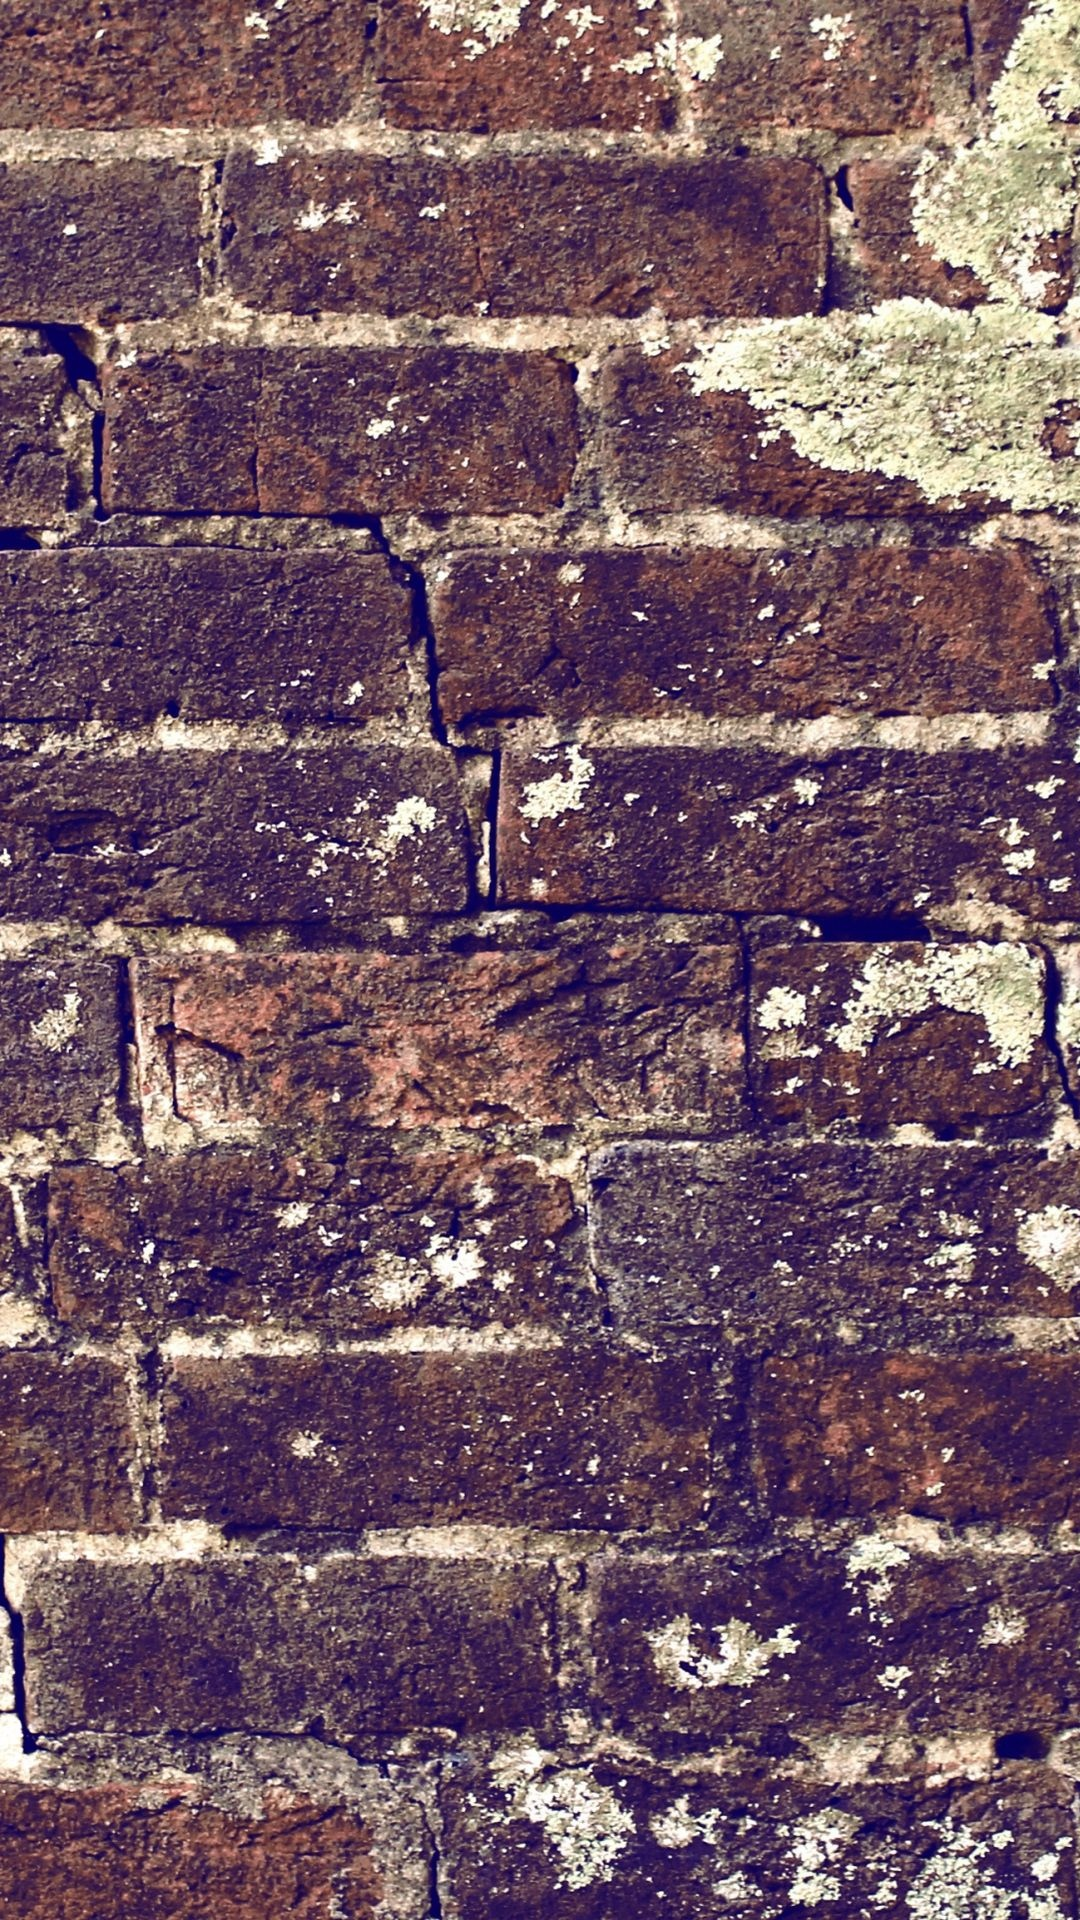 Galaxy S4 background with brick wall pattern in 1080x1920